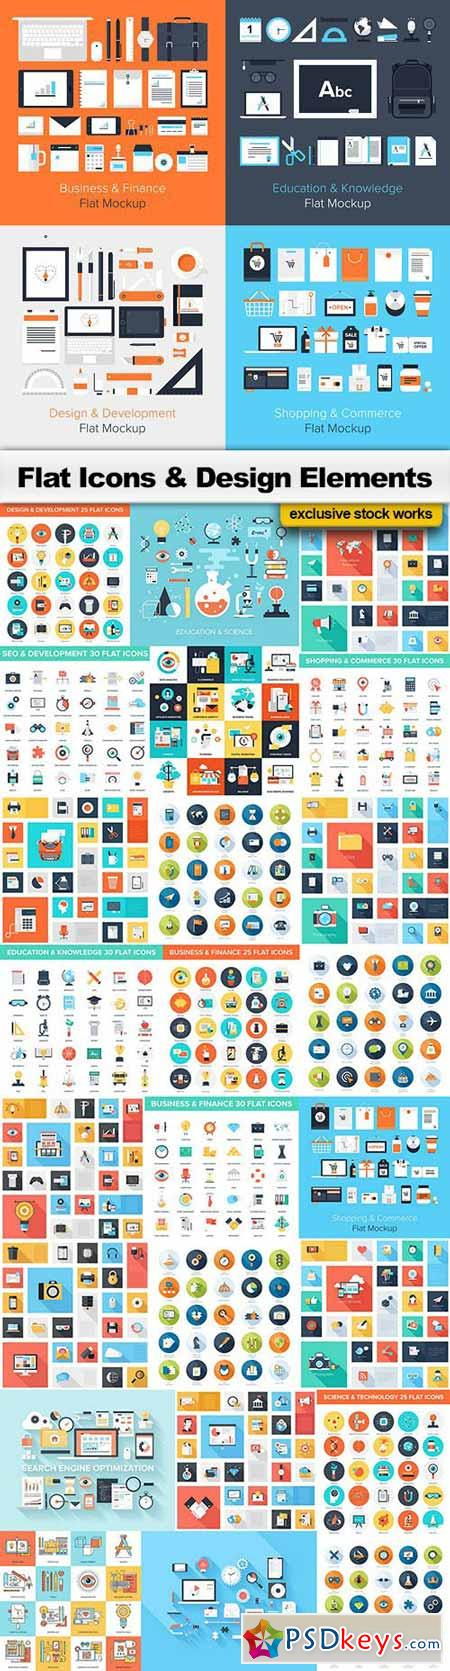 Flat design collection 3 25xeps flat budle pinterest flat design gumiabroncs Images